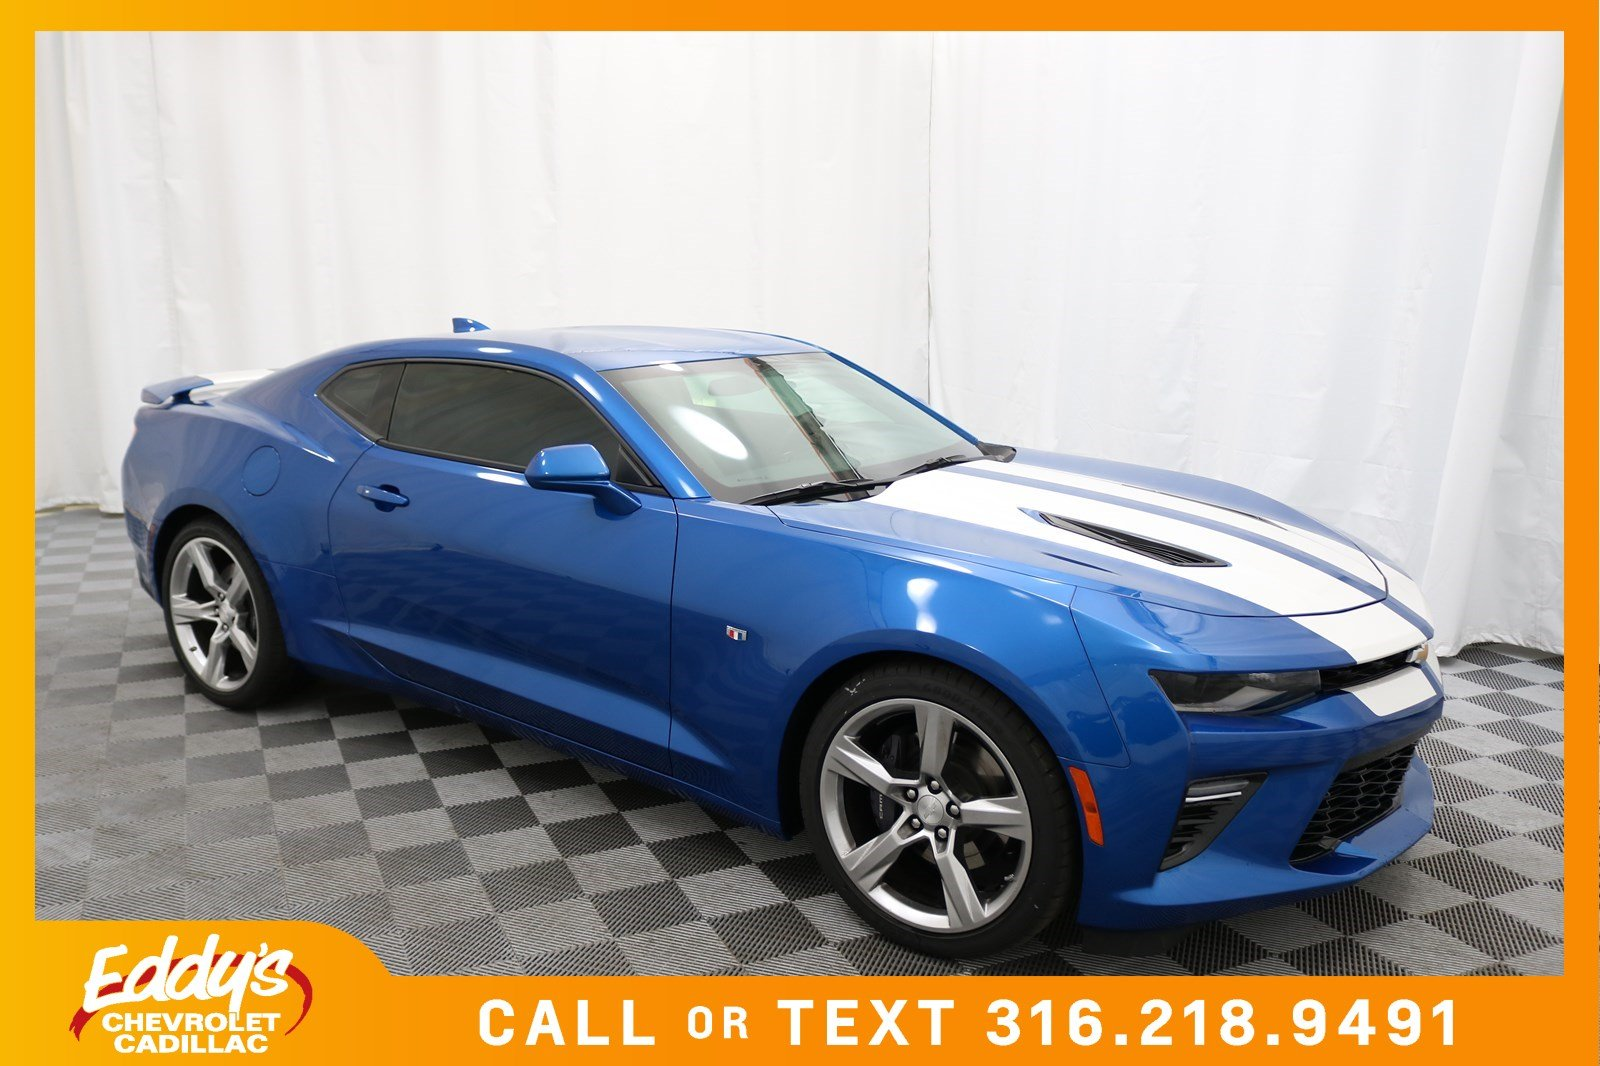 new 2018 chevrolet camaro ss coupe in wichita cc4941 eddy 39 s chevrolet cadillac. Black Bedroom Furniture Sets. Home Design Ideas